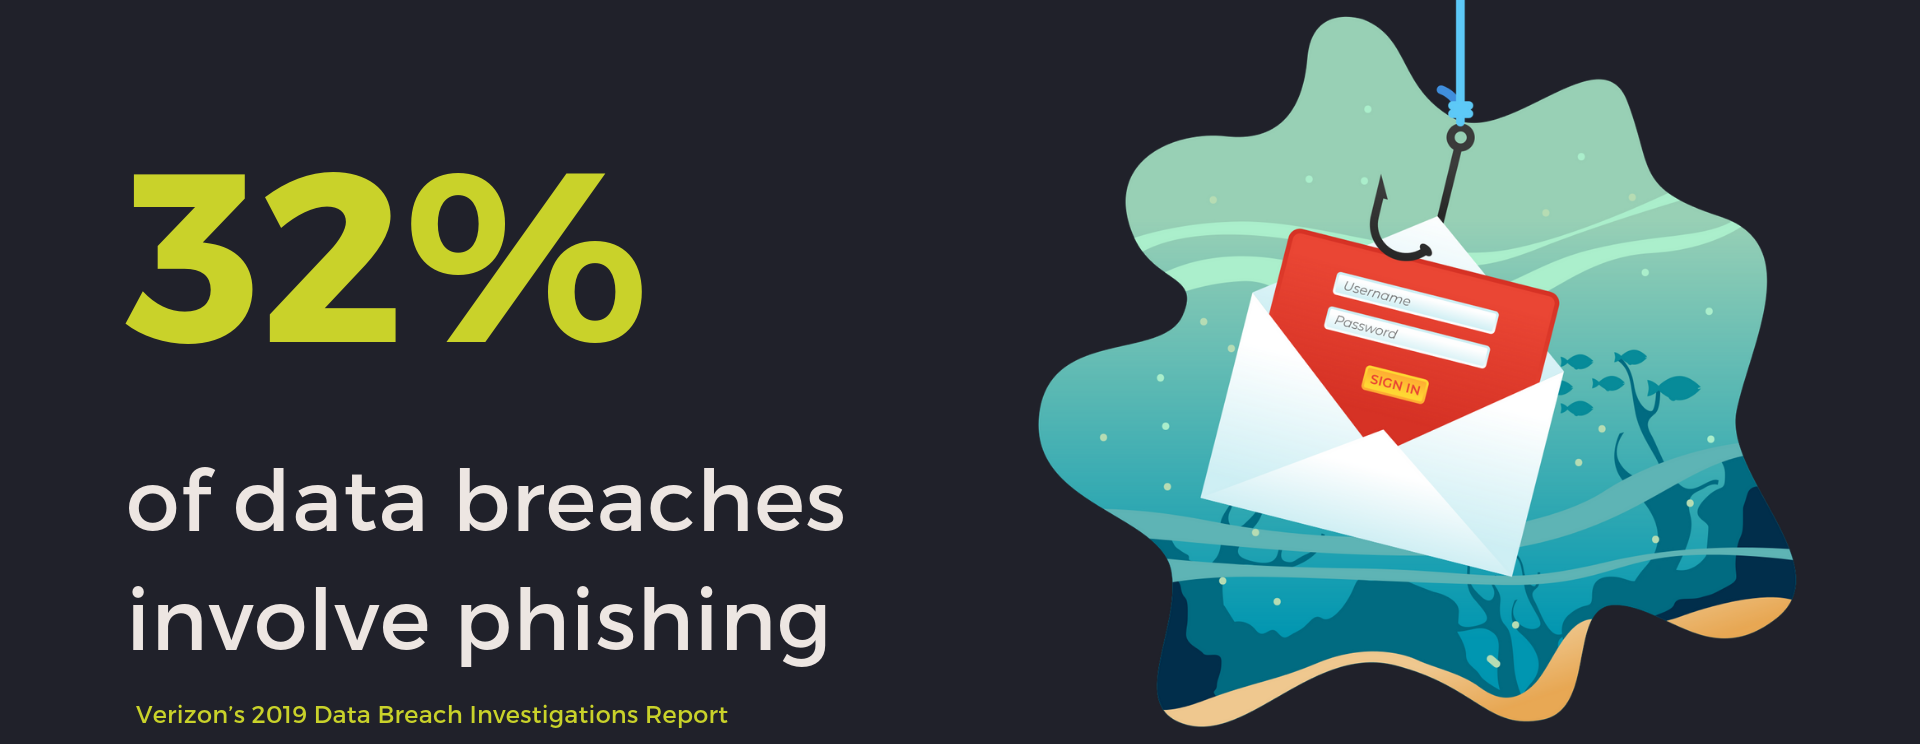 32% breaches involve phishing